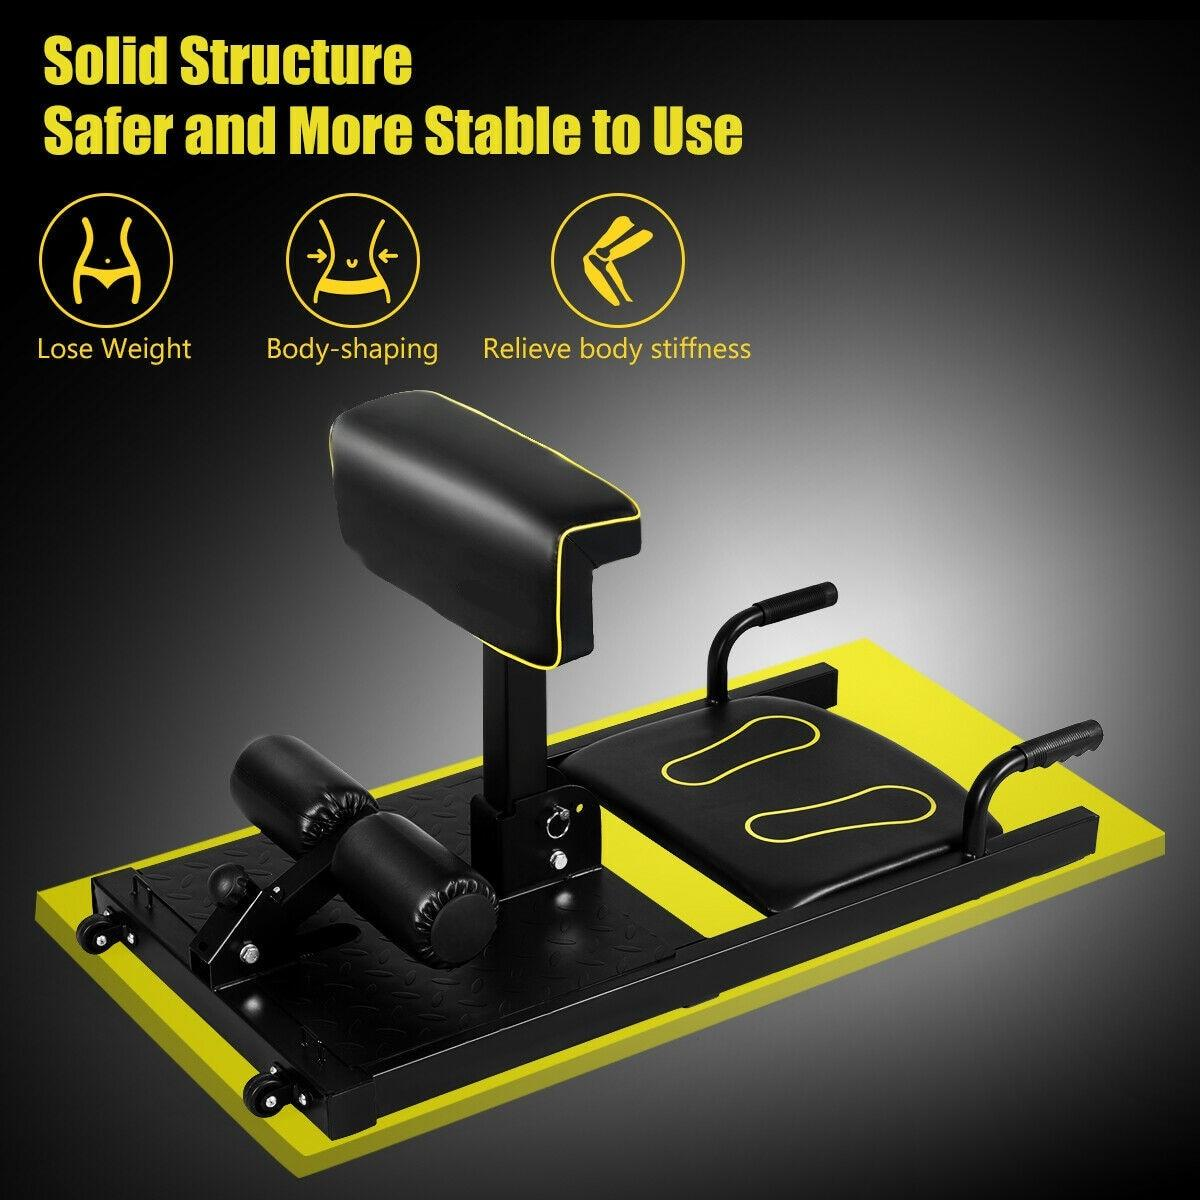 GRT Fitness 24313-81e5cb 8-in-1 Home Gym Multifunction Squat Fitness Machine workout equipments exercise equipment